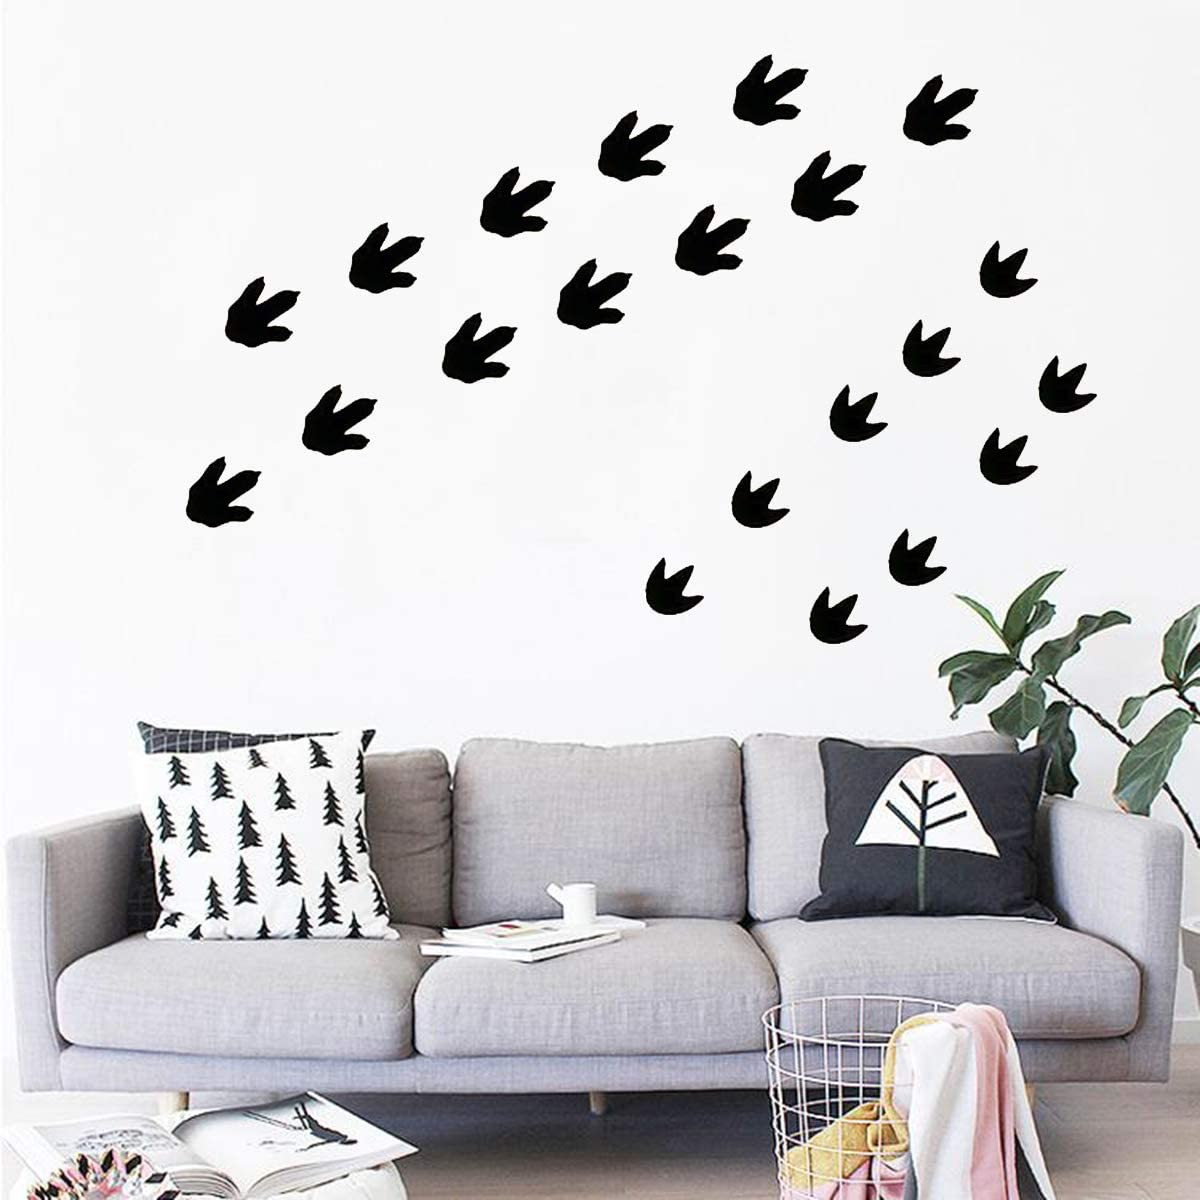 Dinosaur Footprints Stickers 45 pcs Dinosaur Tracks Decals Removable Peel and Stick Wall StickersBaby Nursery Removable Wall Decor Decals